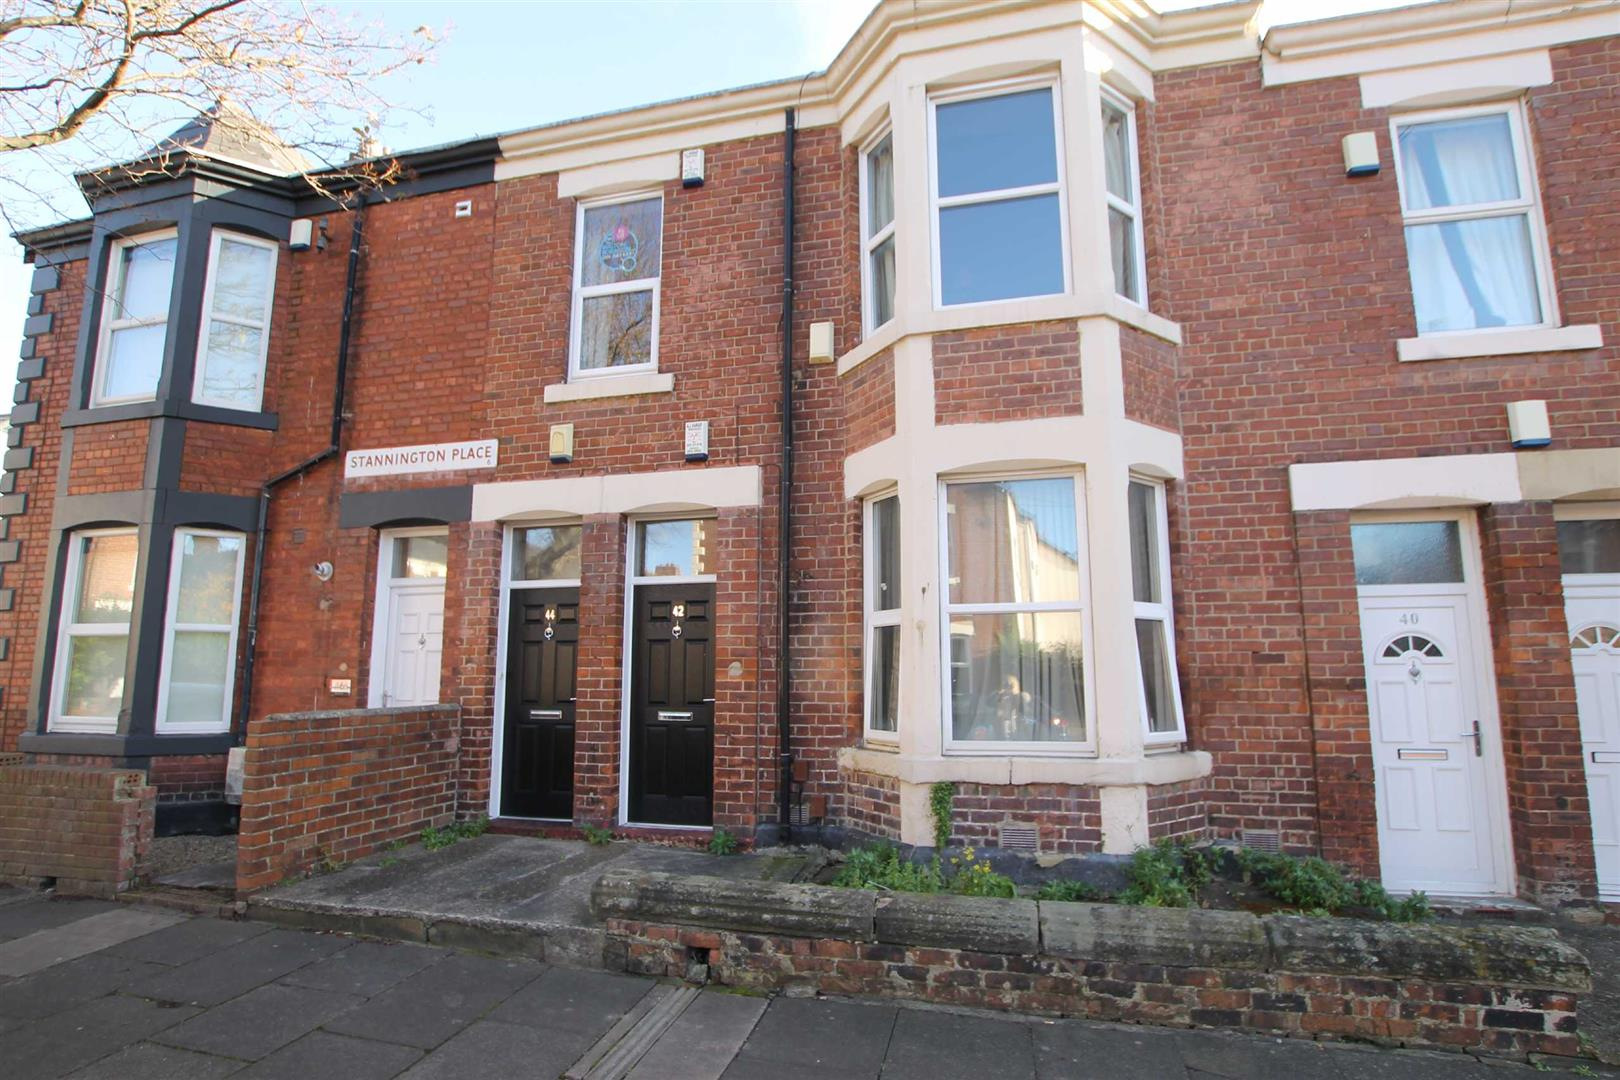 Stannington Place Newcastle Upon Tyne, 2 Bedrooms  Flat ,For Sale